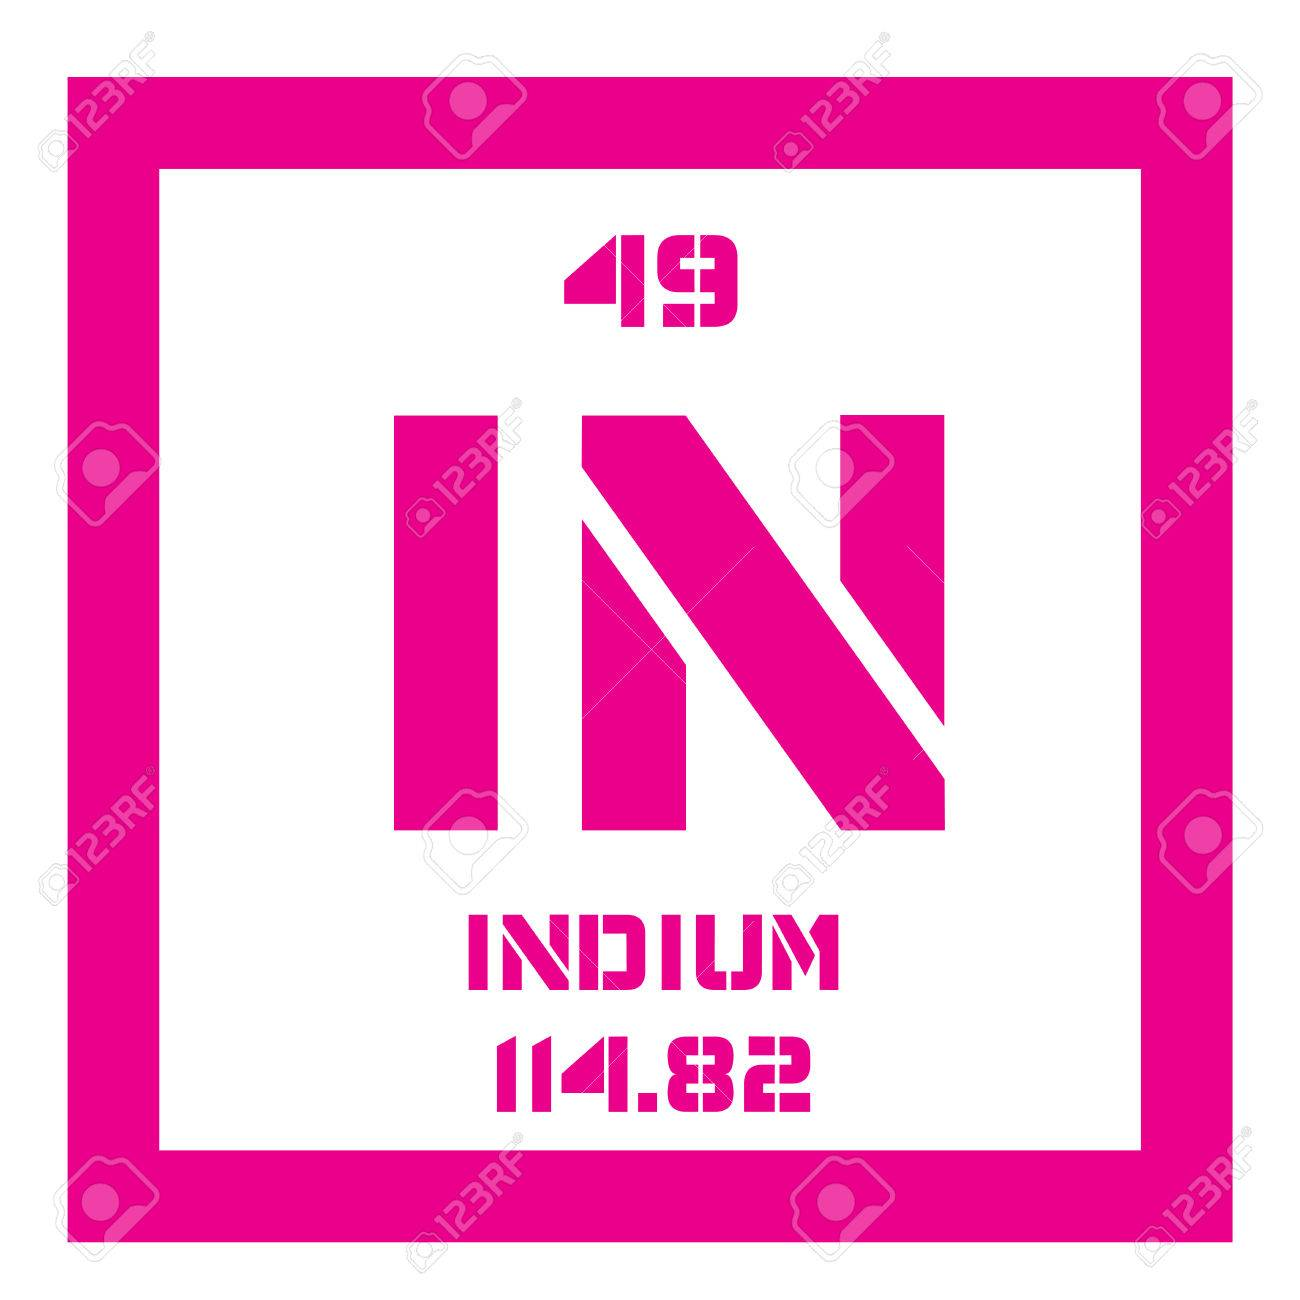 Indium chemical element soft post transition metal colored indium chemical element soft post transition metal colored icon with atomic number and biocorpaavc Images